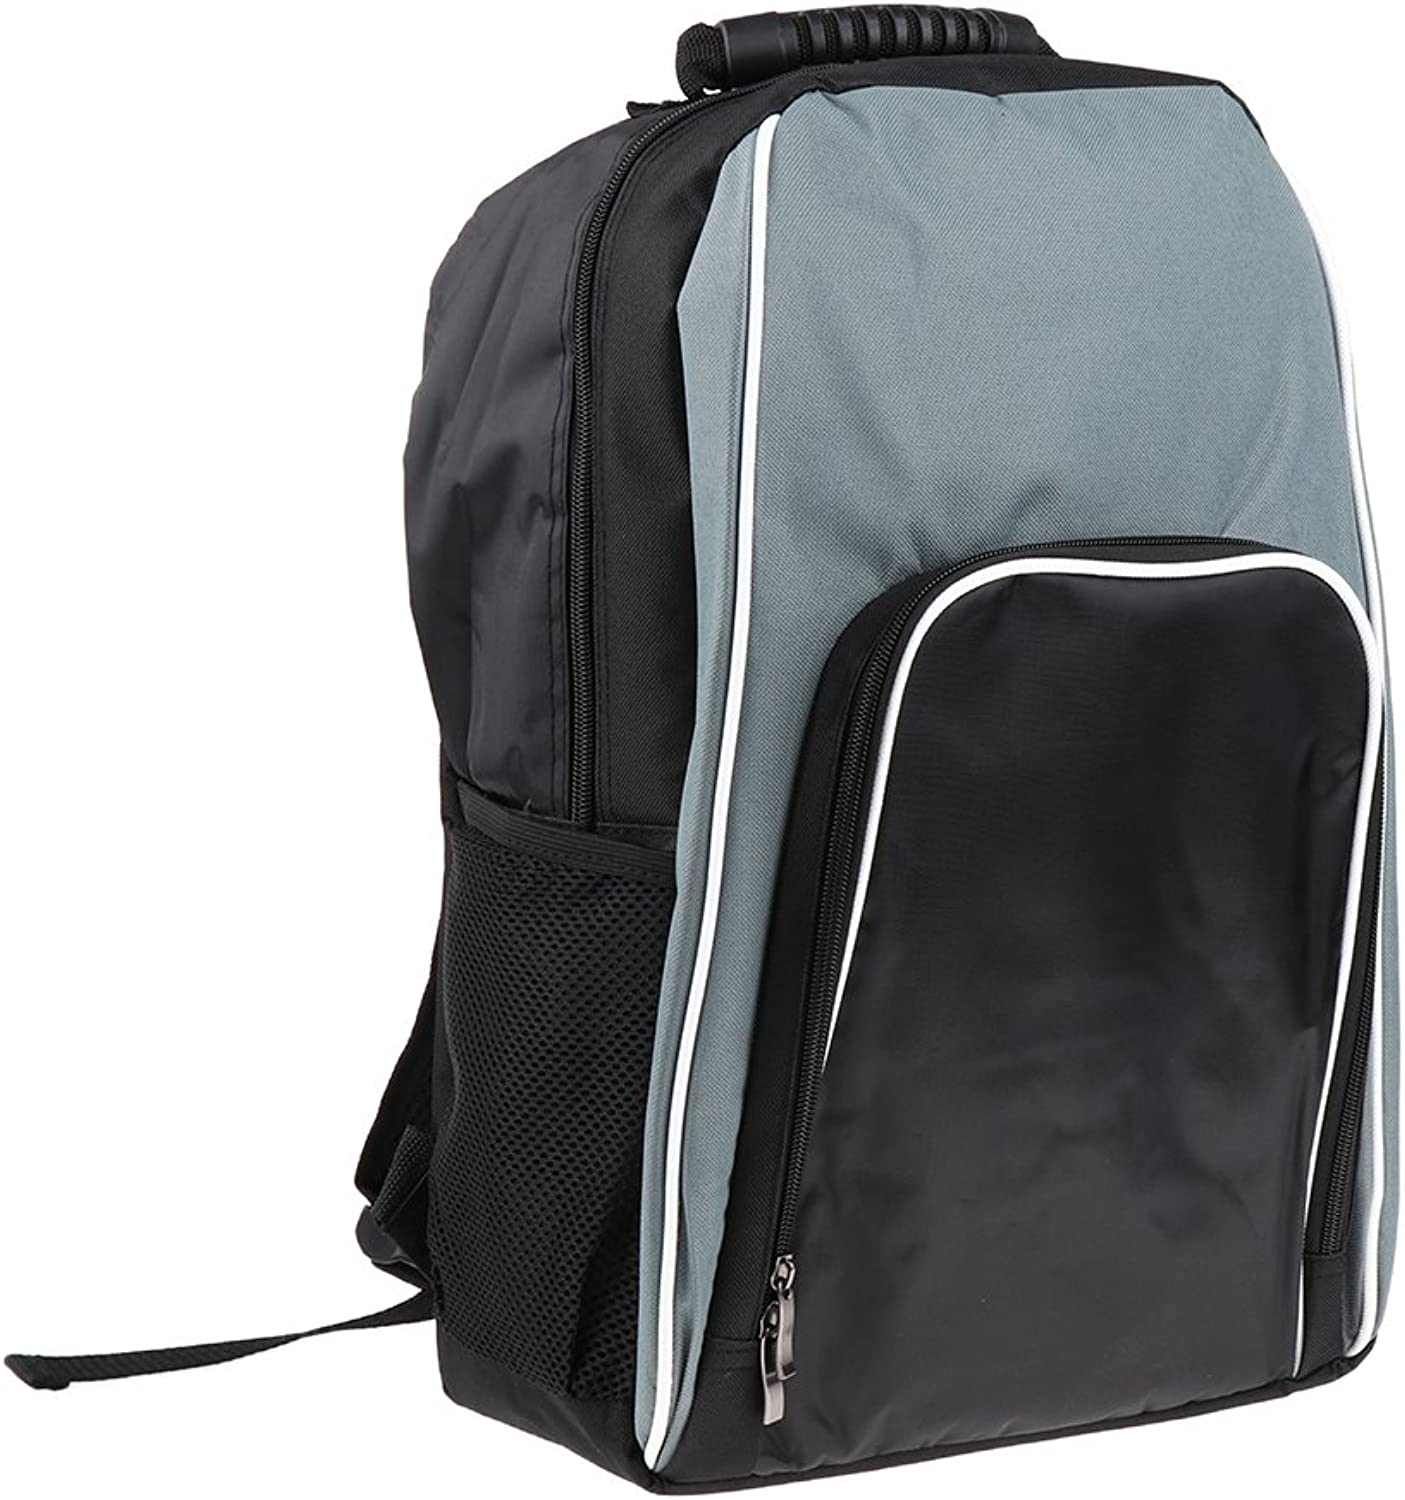 Outdoor Thermal Insulated Backpack Cooler Bag Ice Pack Camping Travel Picnic Beer Food Lunch Bag